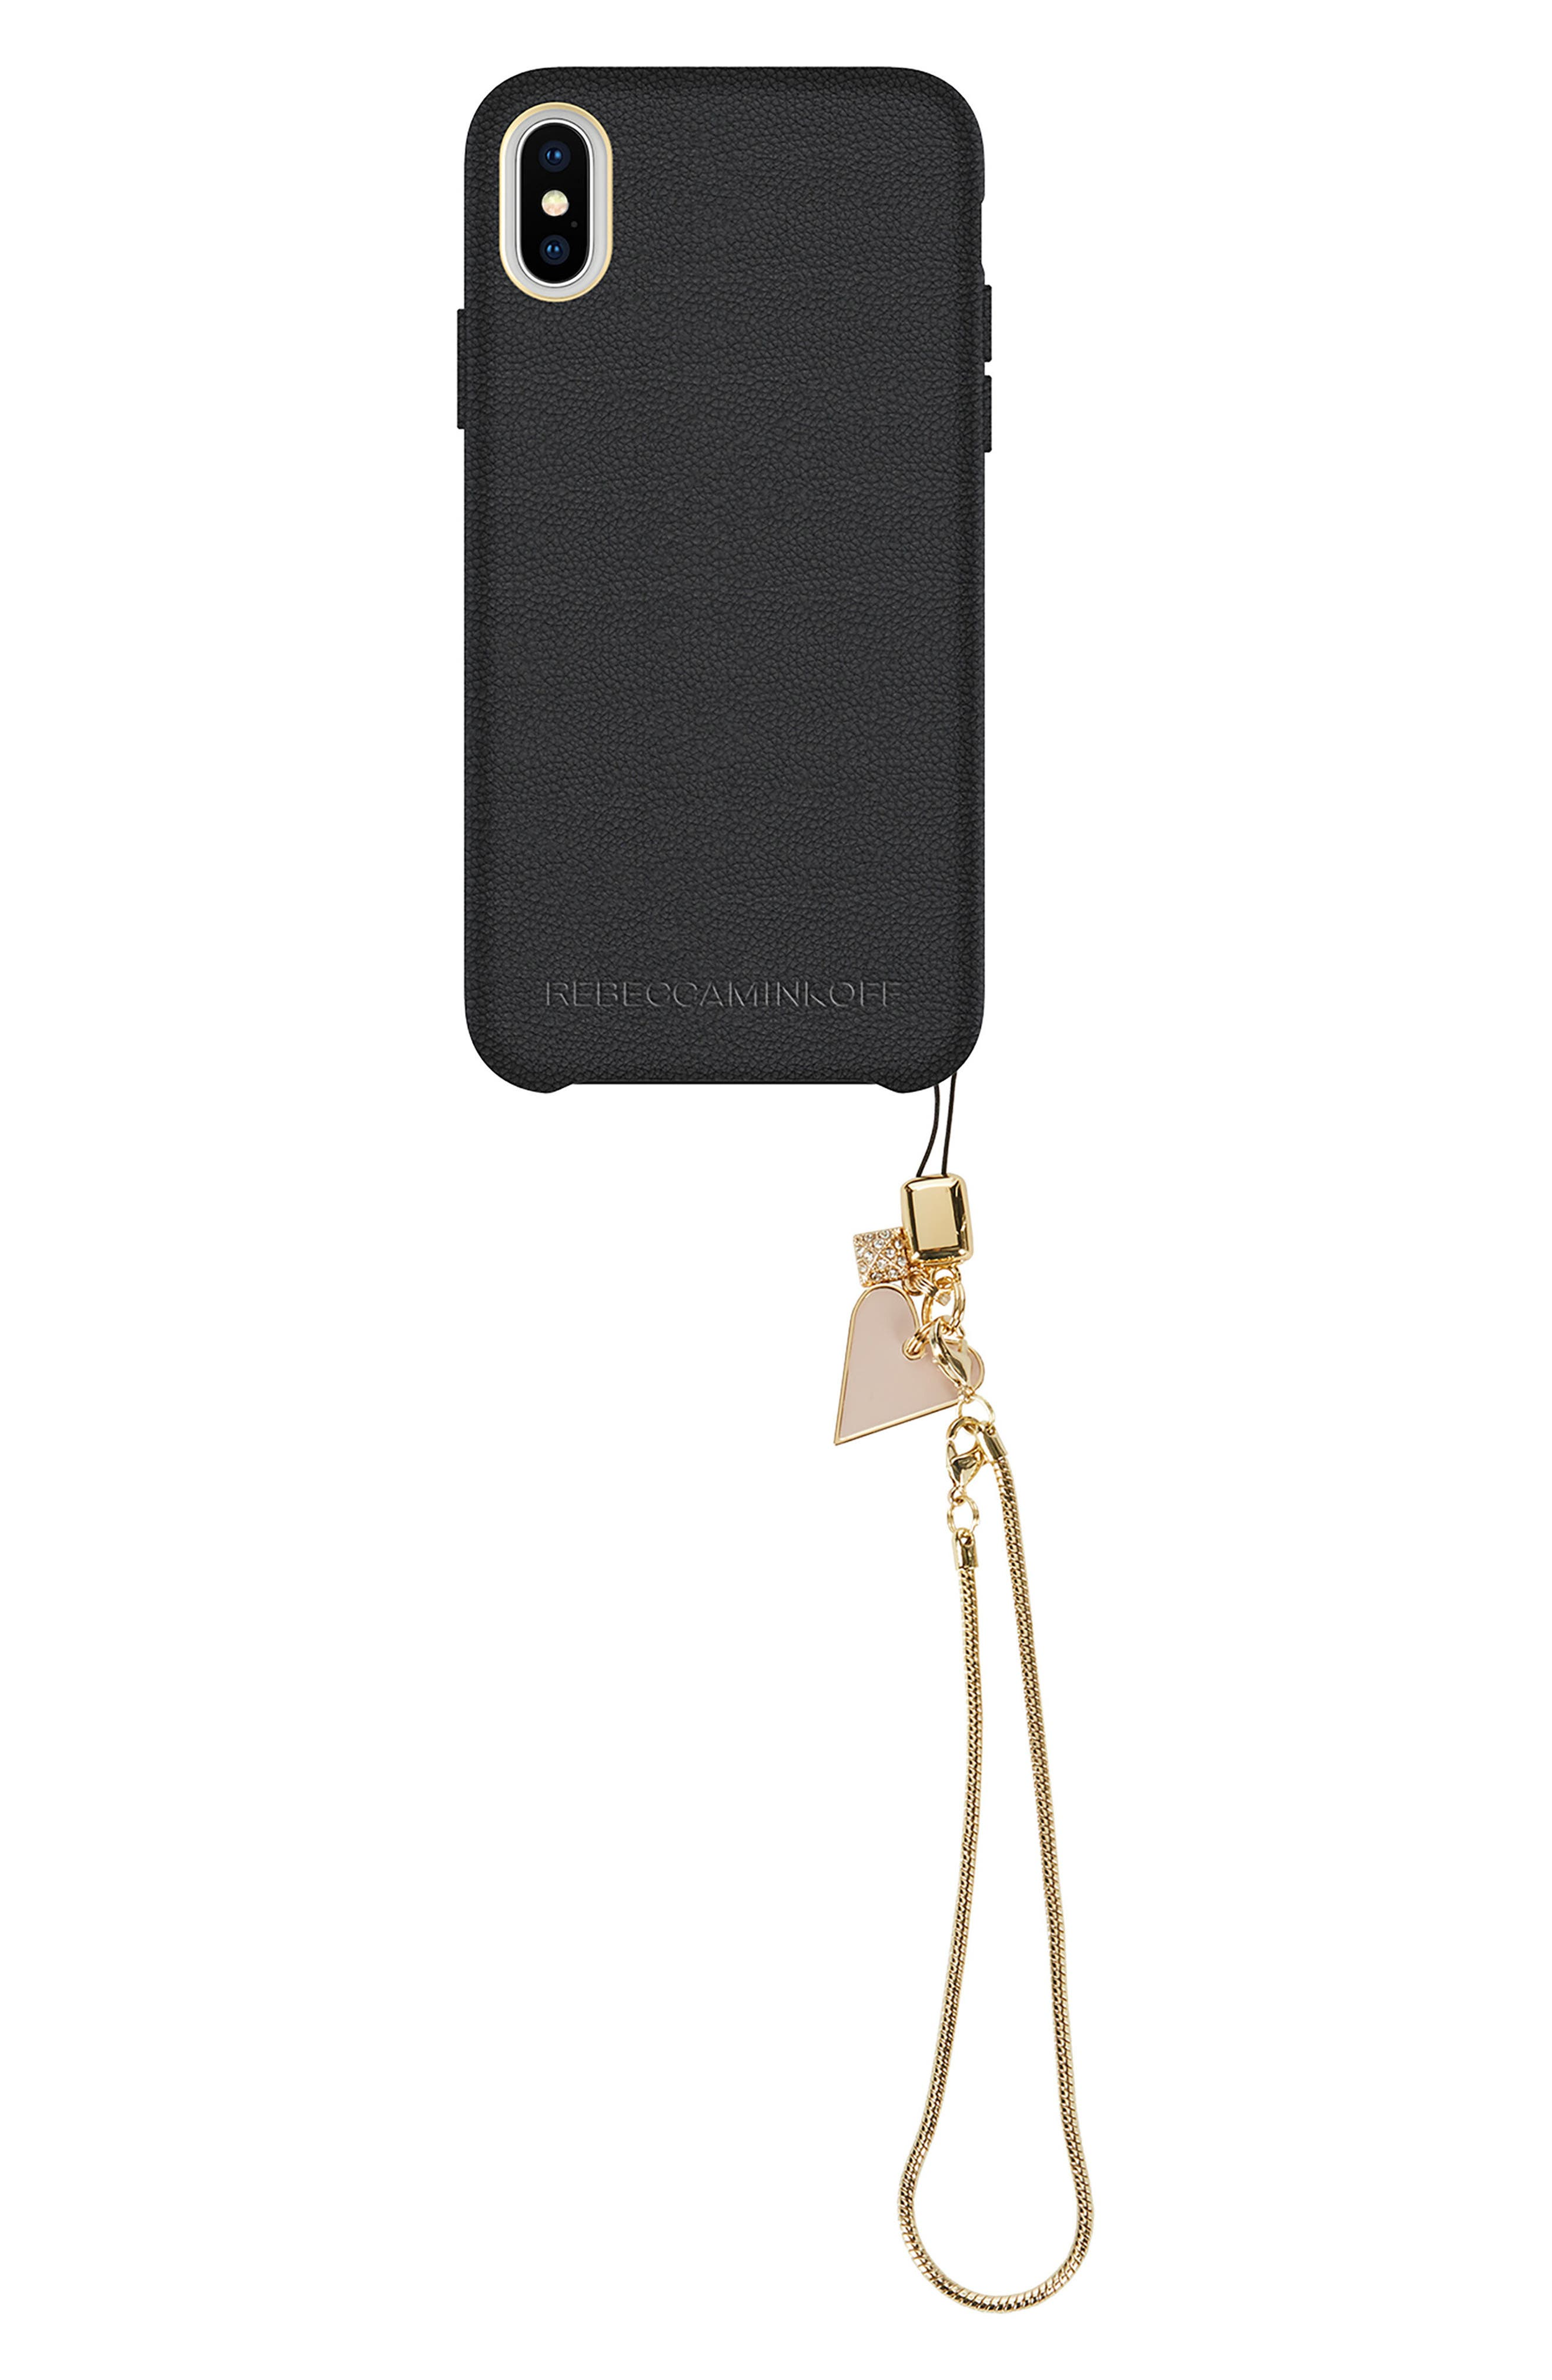 Leather iPhone X Wristlet Case with Charms,                         Main,                         color, 001